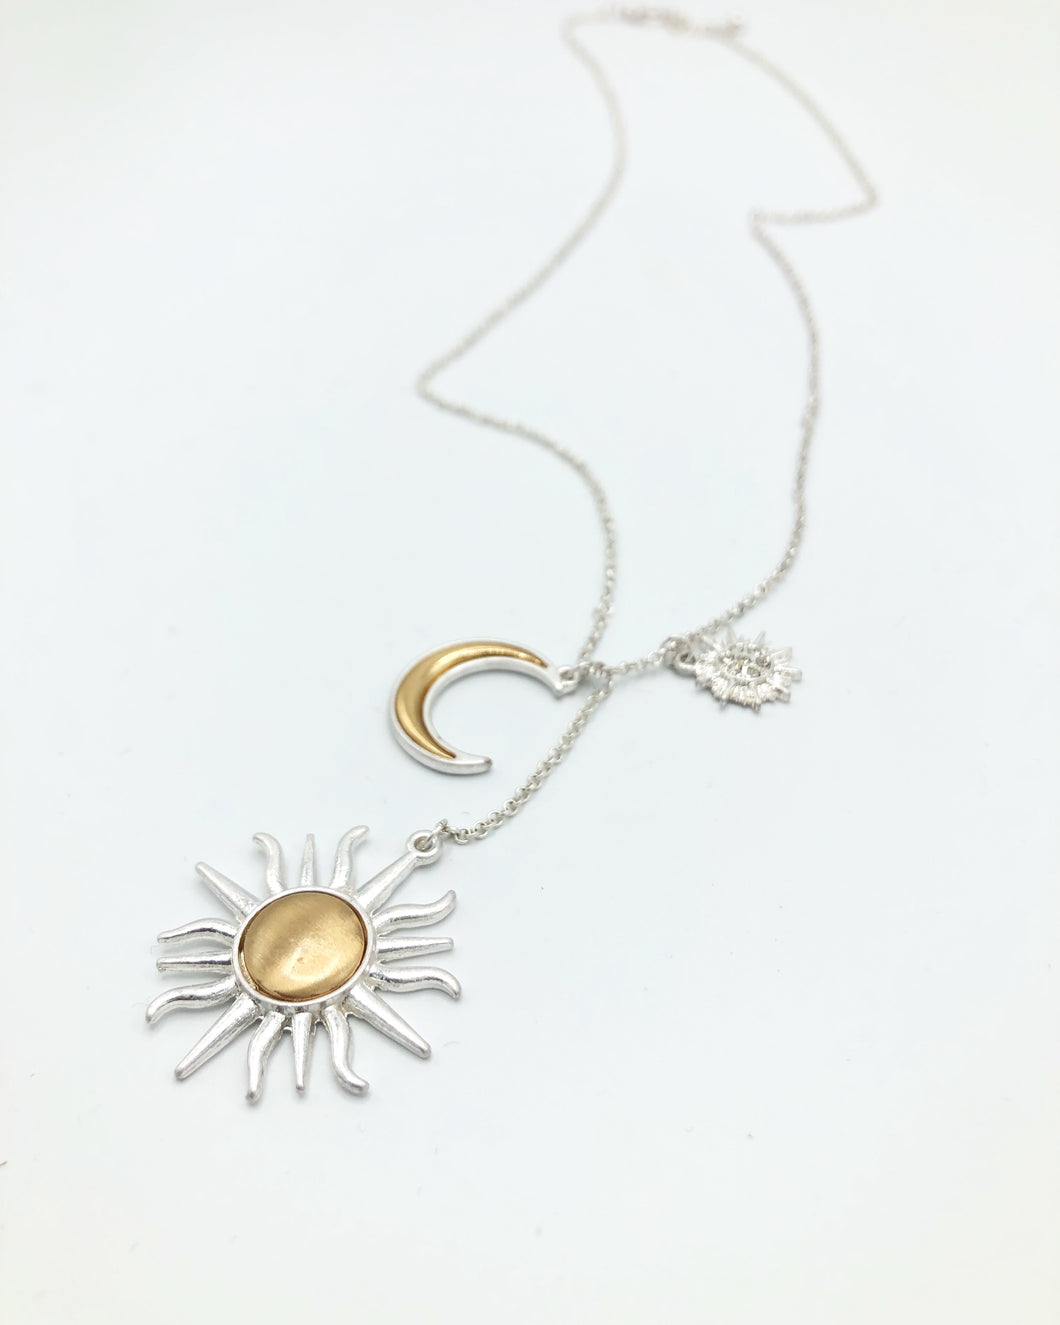 Sun Moon And Charm Necklace In Matte Silver